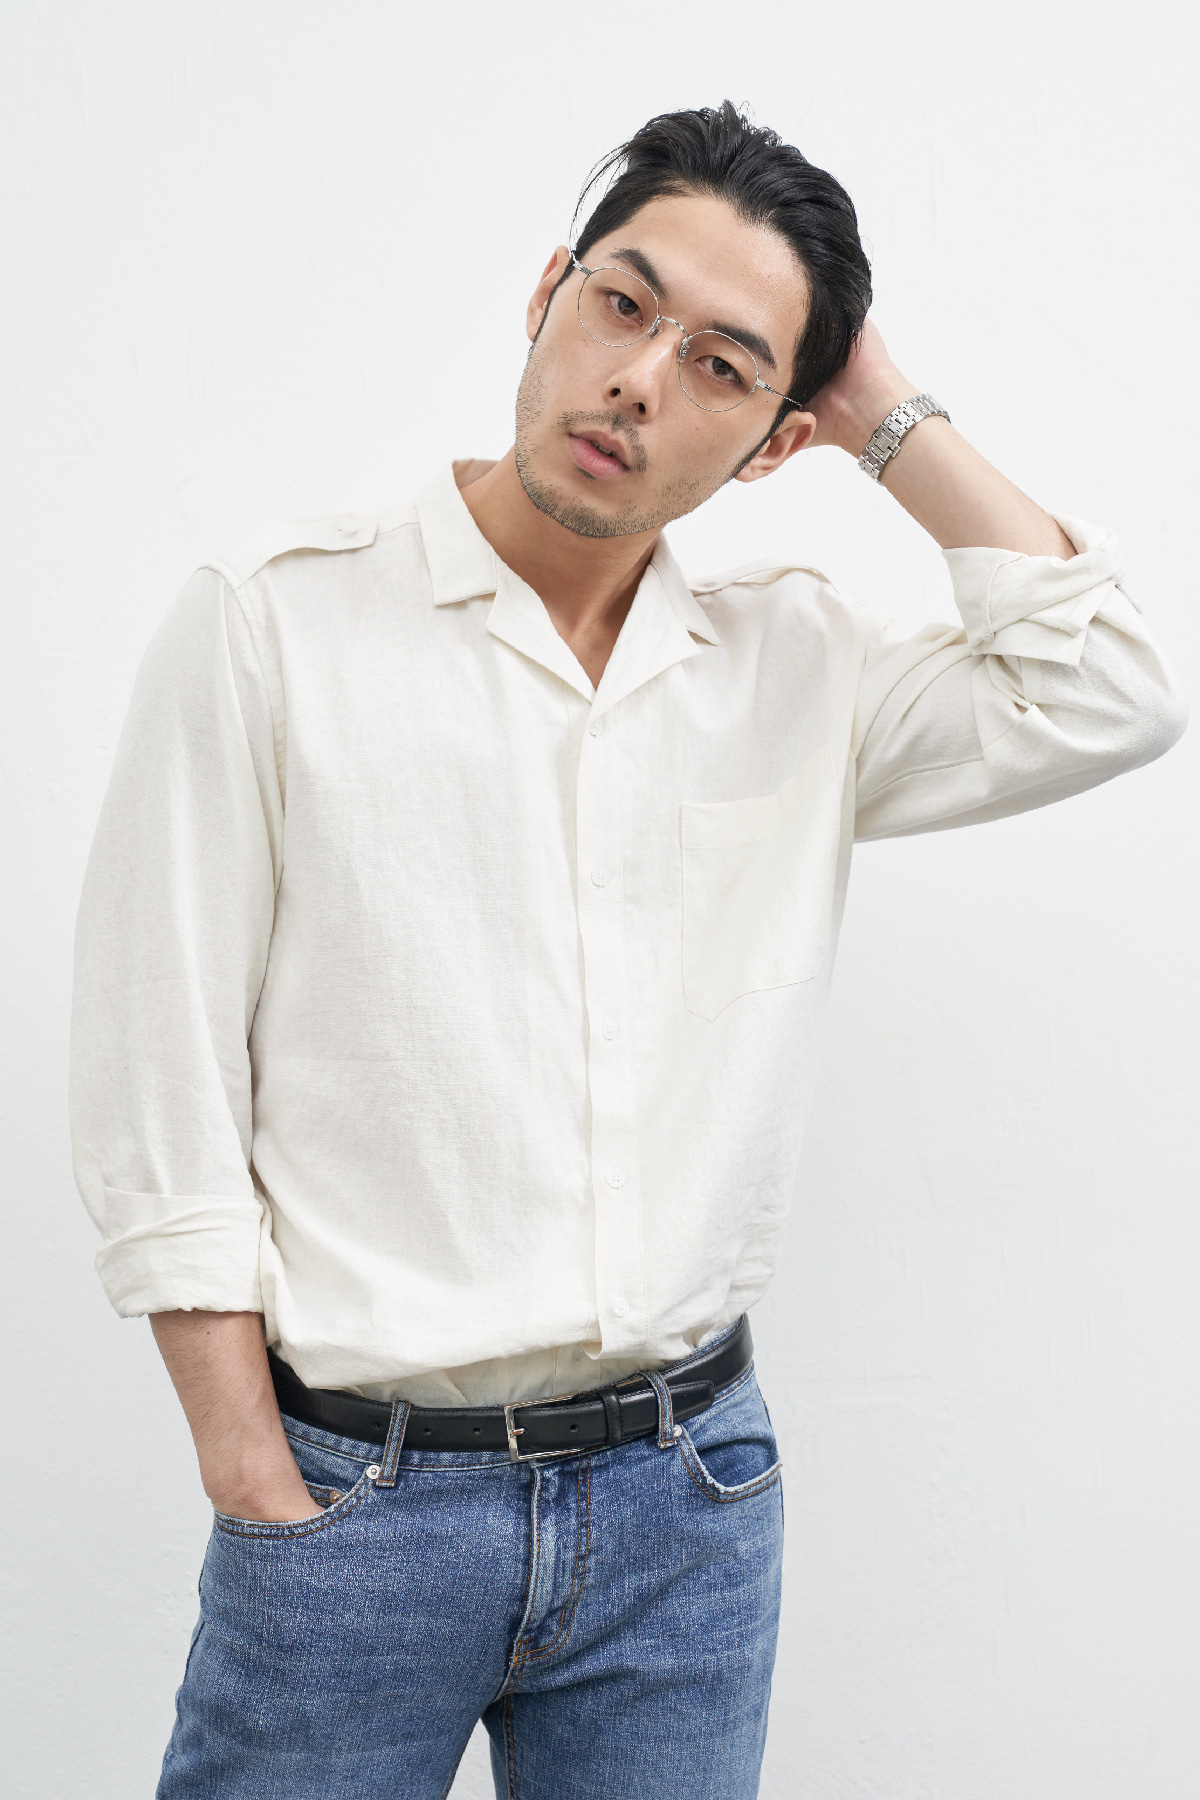 [3/5 예약배송] #jpwh15 Nakama wide collar linen shirt